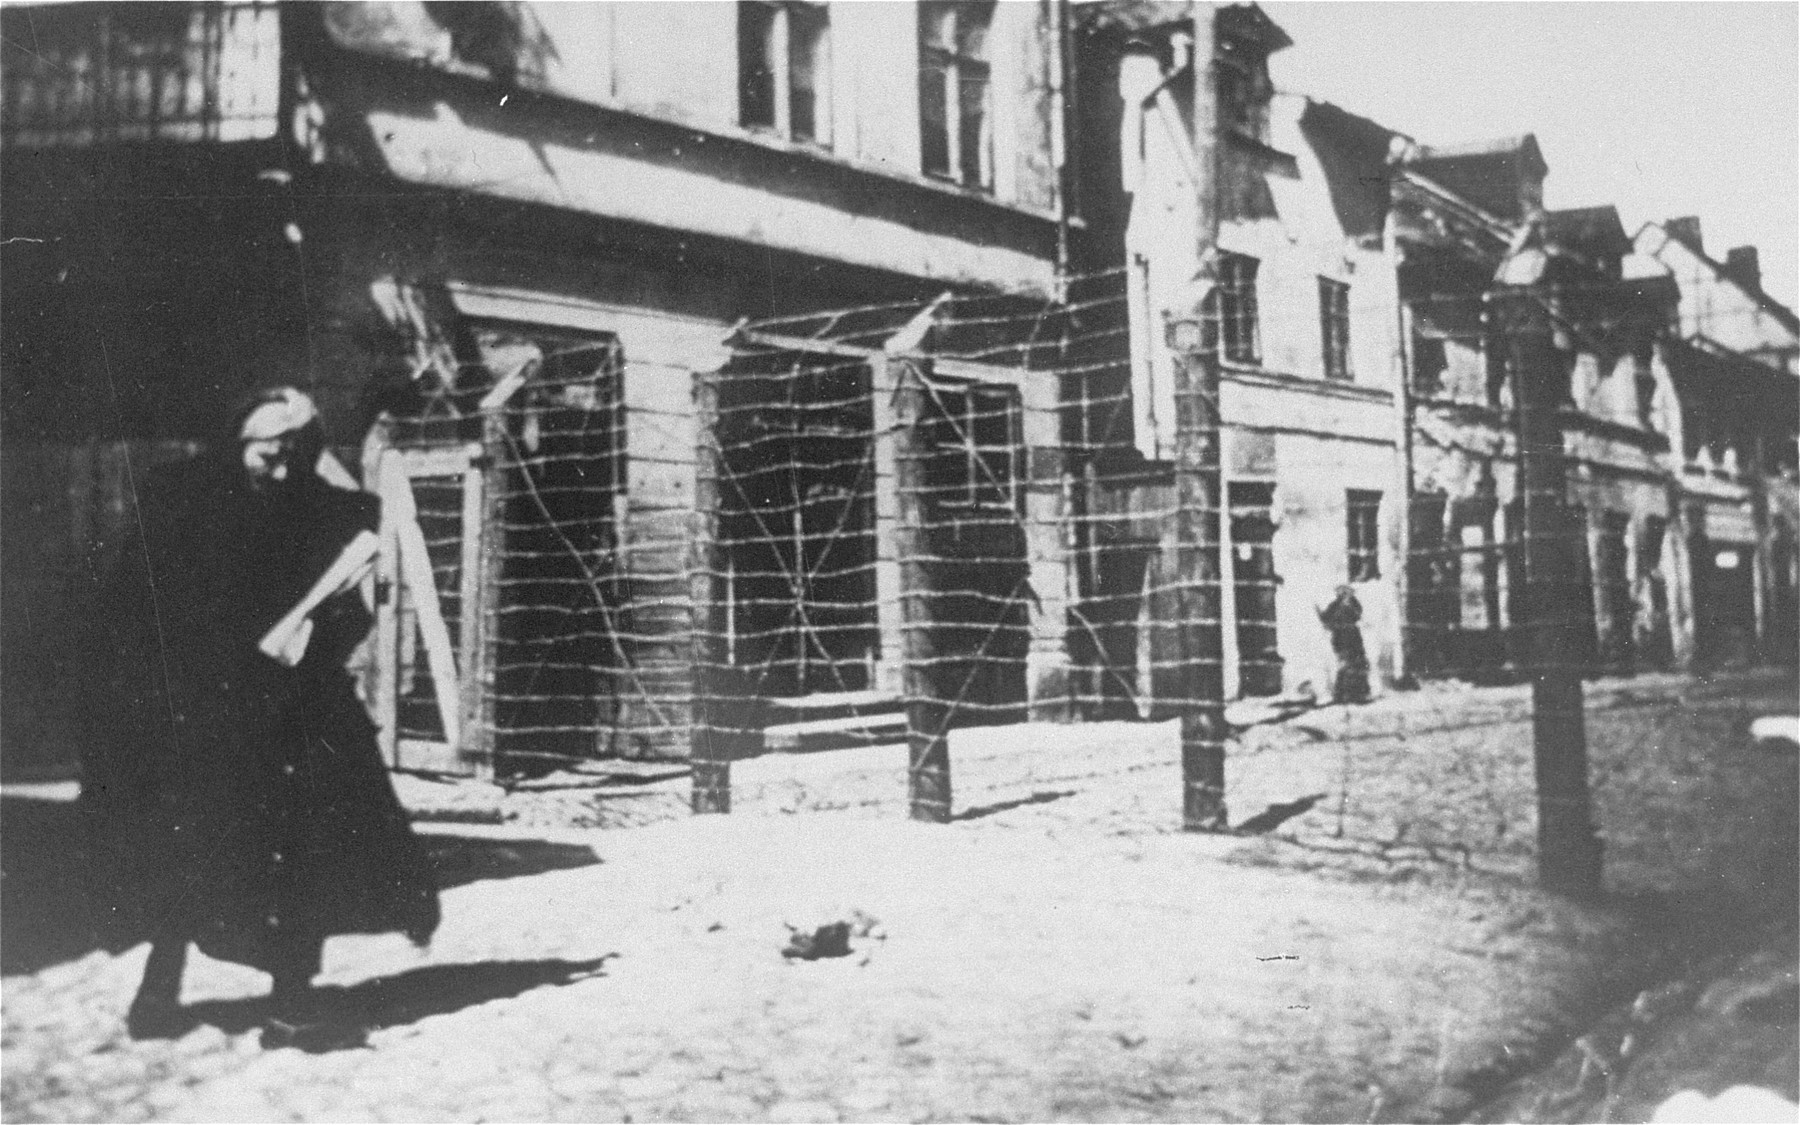 View of the gate and barbed wire fence at the entrance to the Leczyca ghetto.